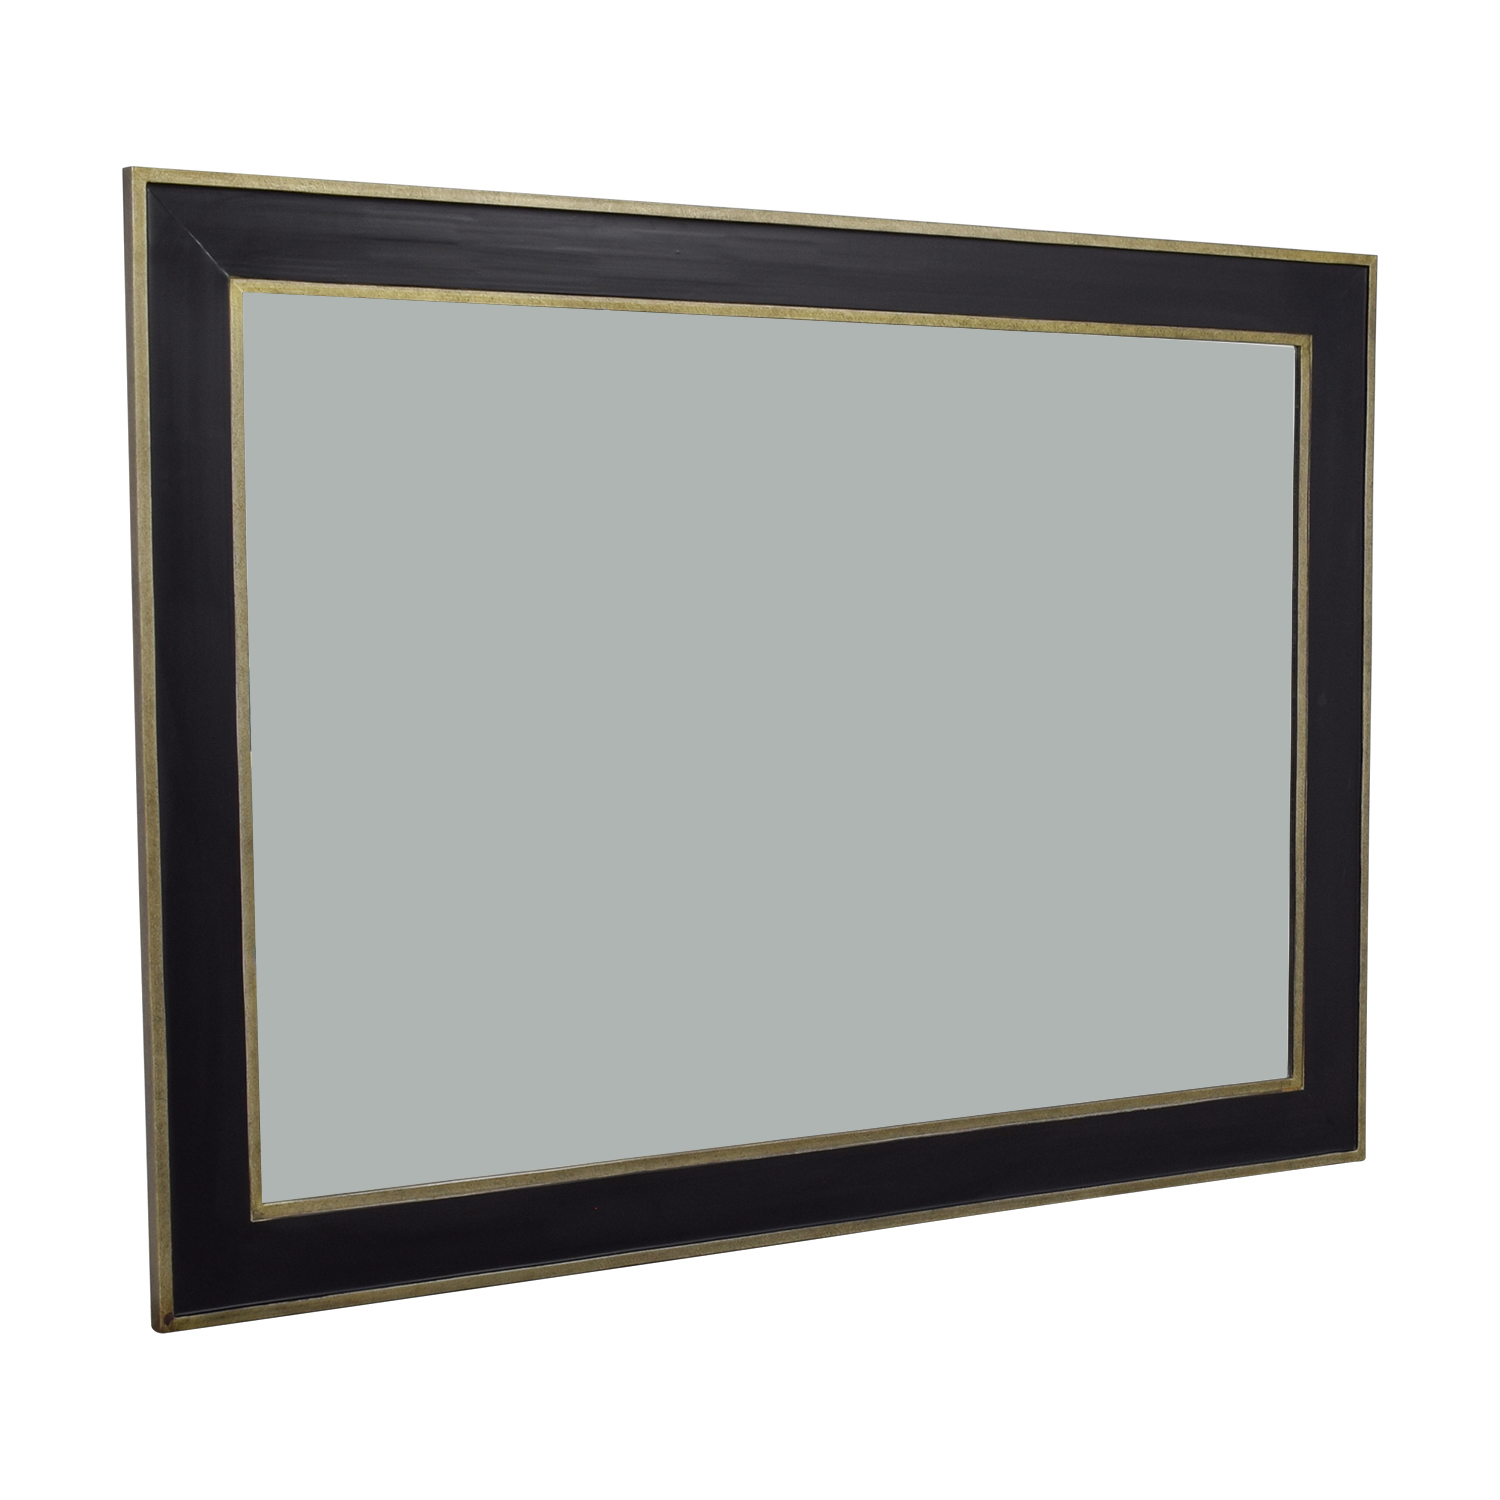 Coaster Coaster Large Scale Wall Mirror on sale